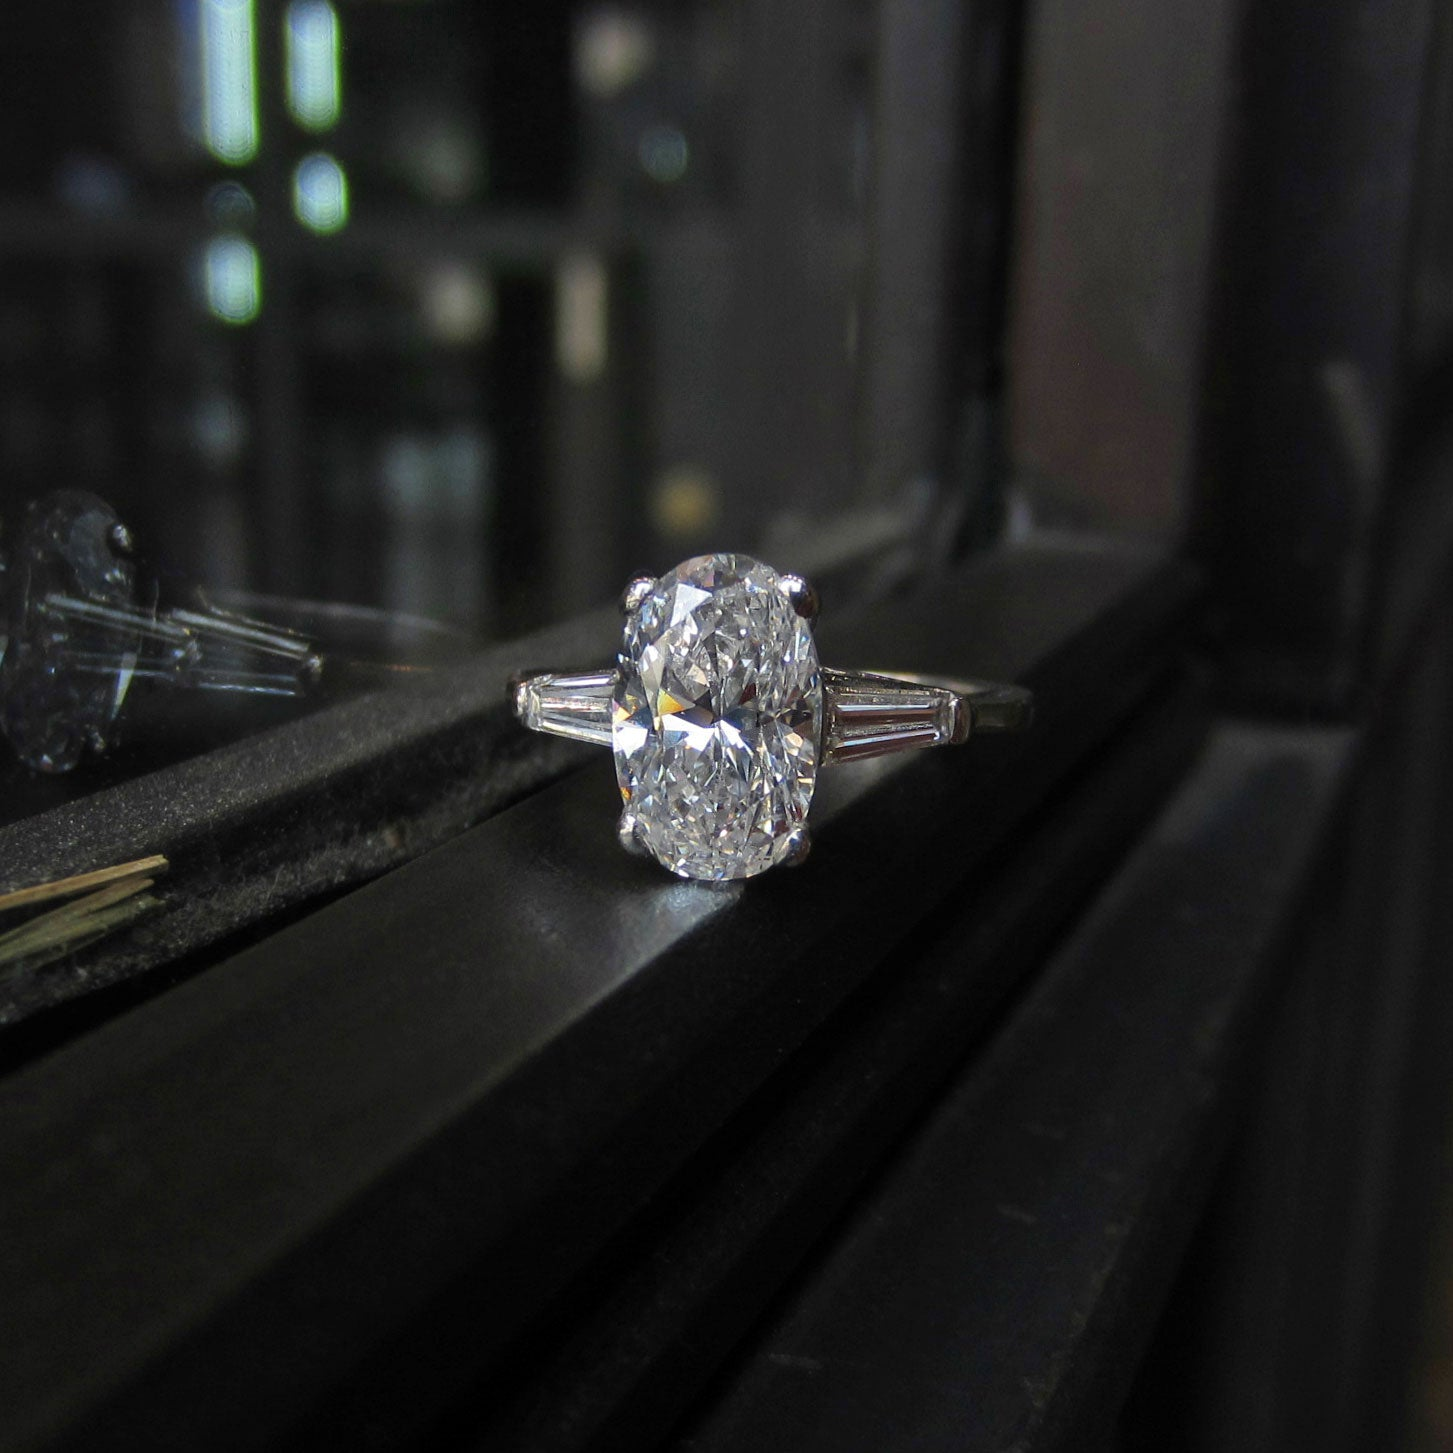 Vintage Engagement Ring, Oval 2.18ct